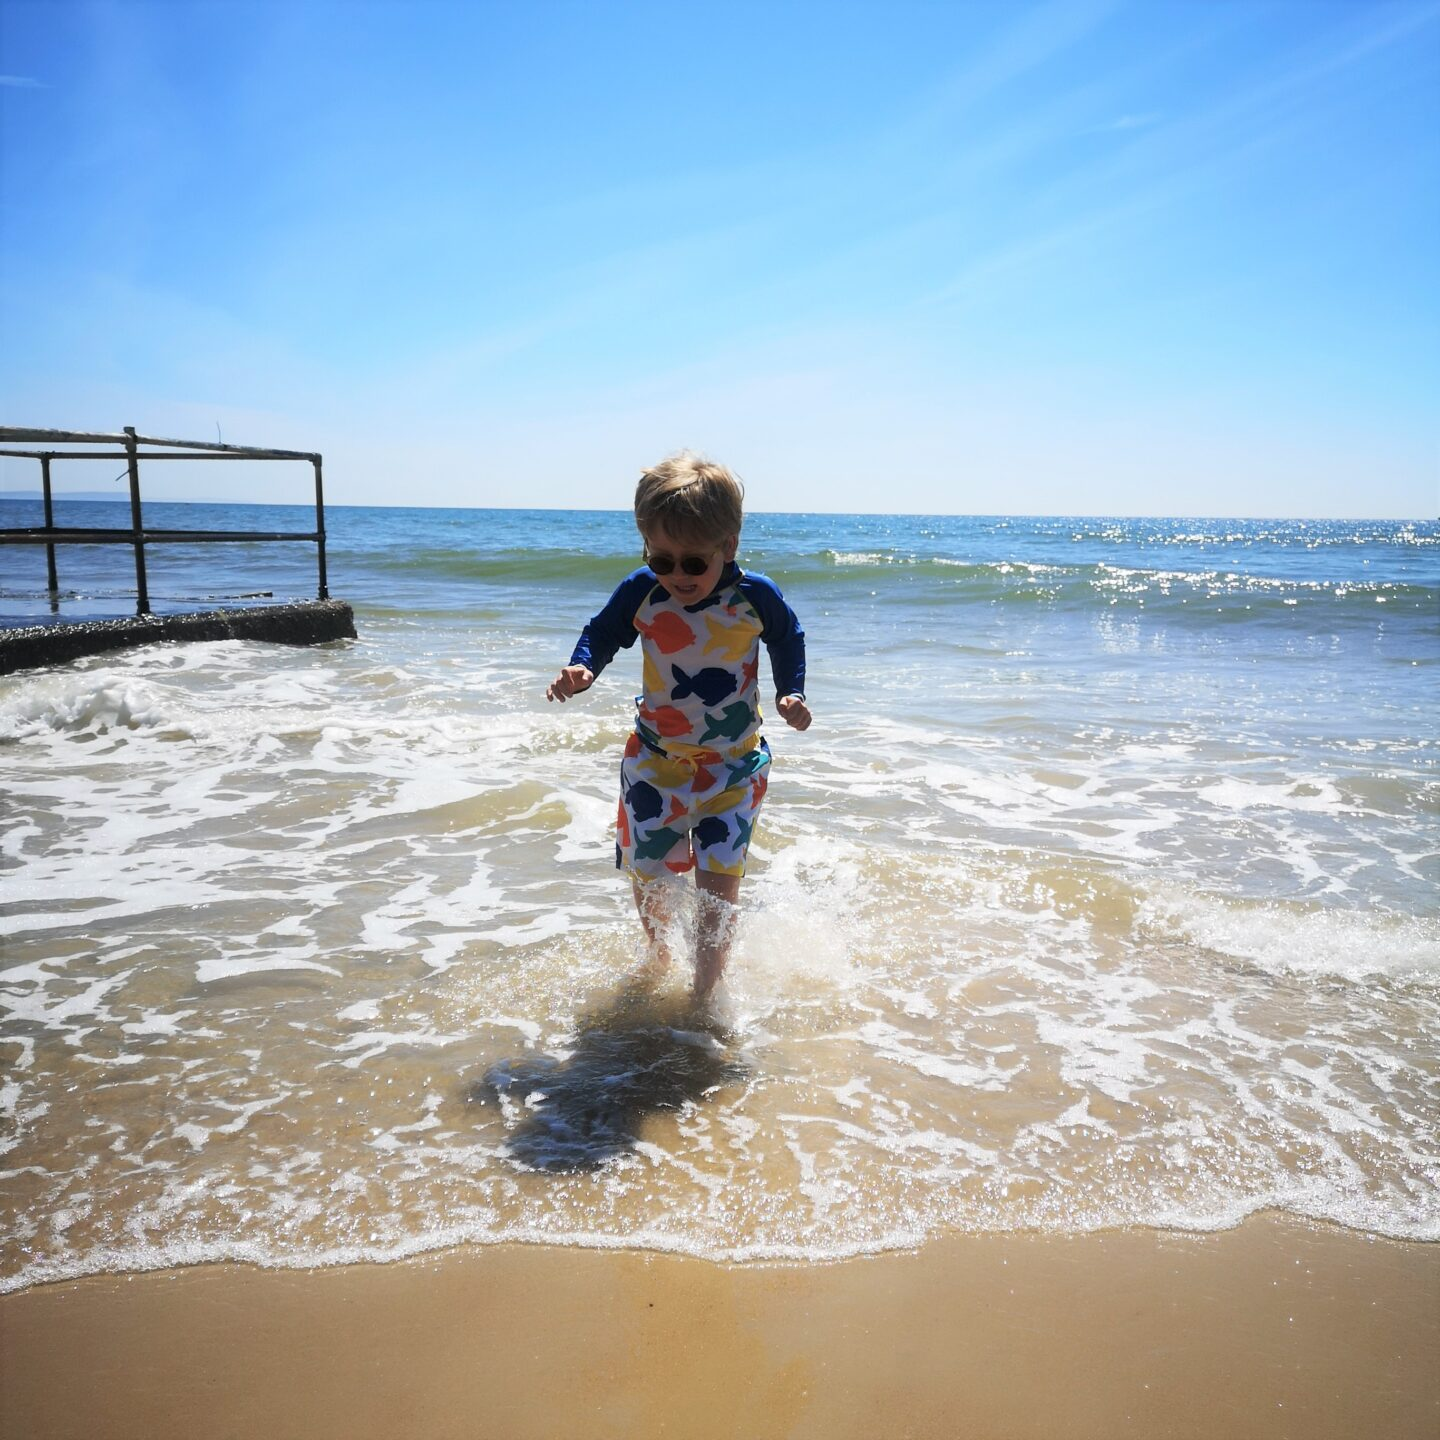 May 2021, Monthly Highlights, Family Days Out, Bournemouth Beach, Family Break, Bournemouth, Dorset, Beach Life